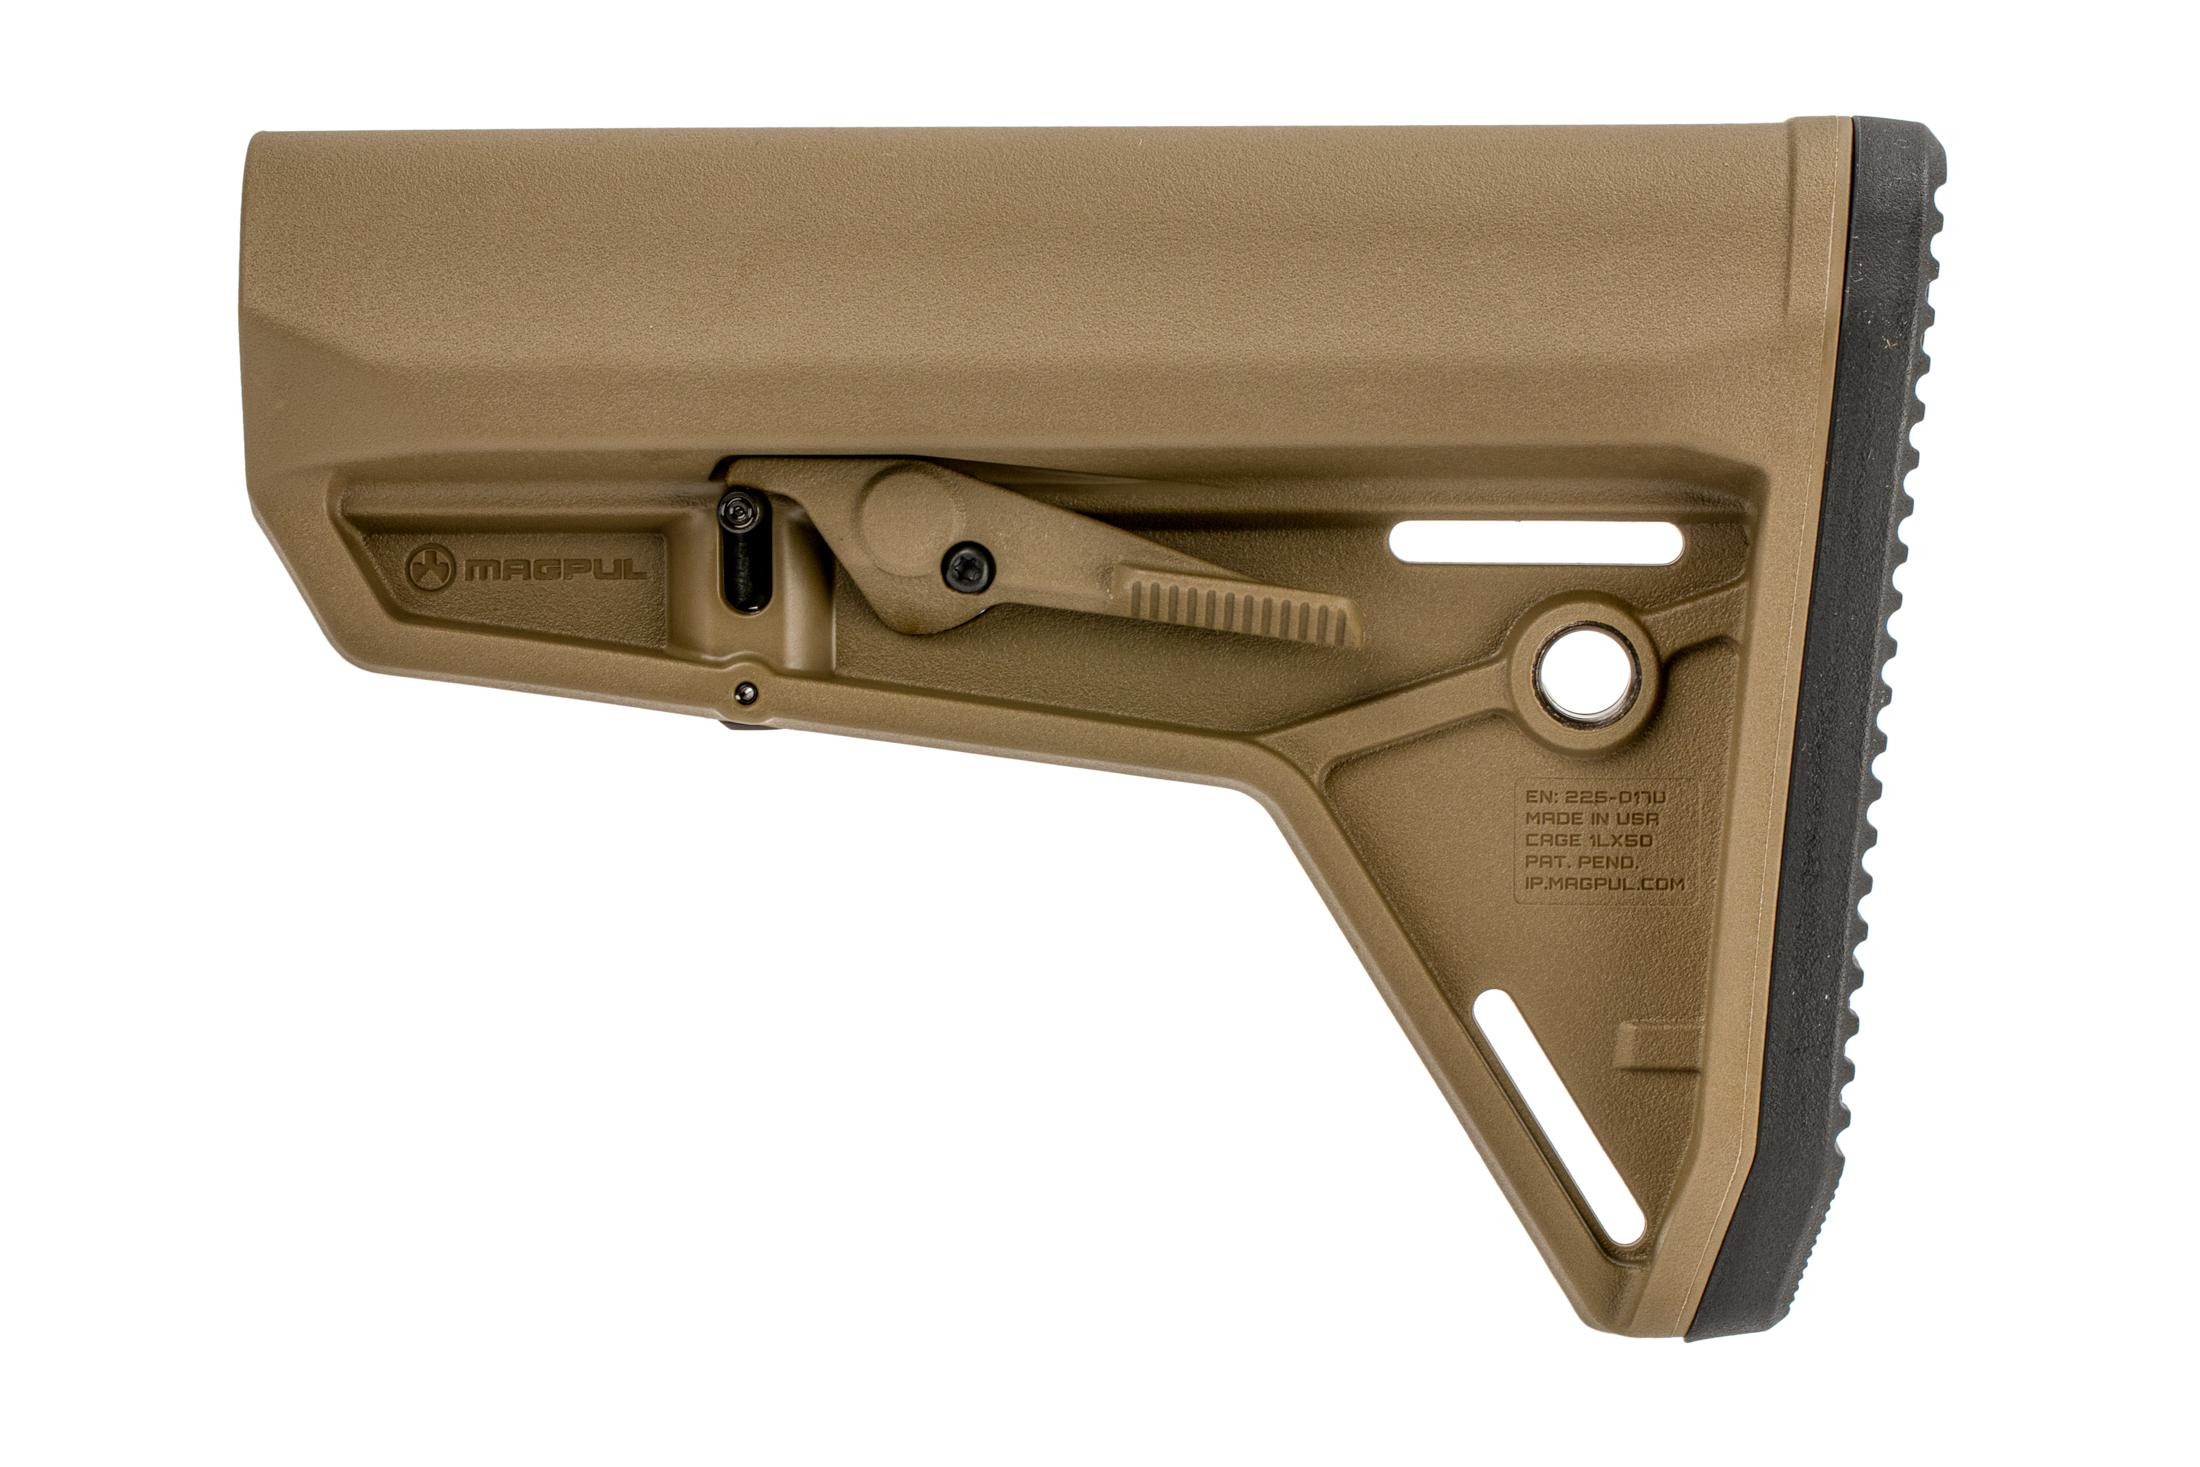 Magpul MOE SL AR-15 carbine stock with multiple QD sling swivel sockets for MIL-SPEC receiver extensions